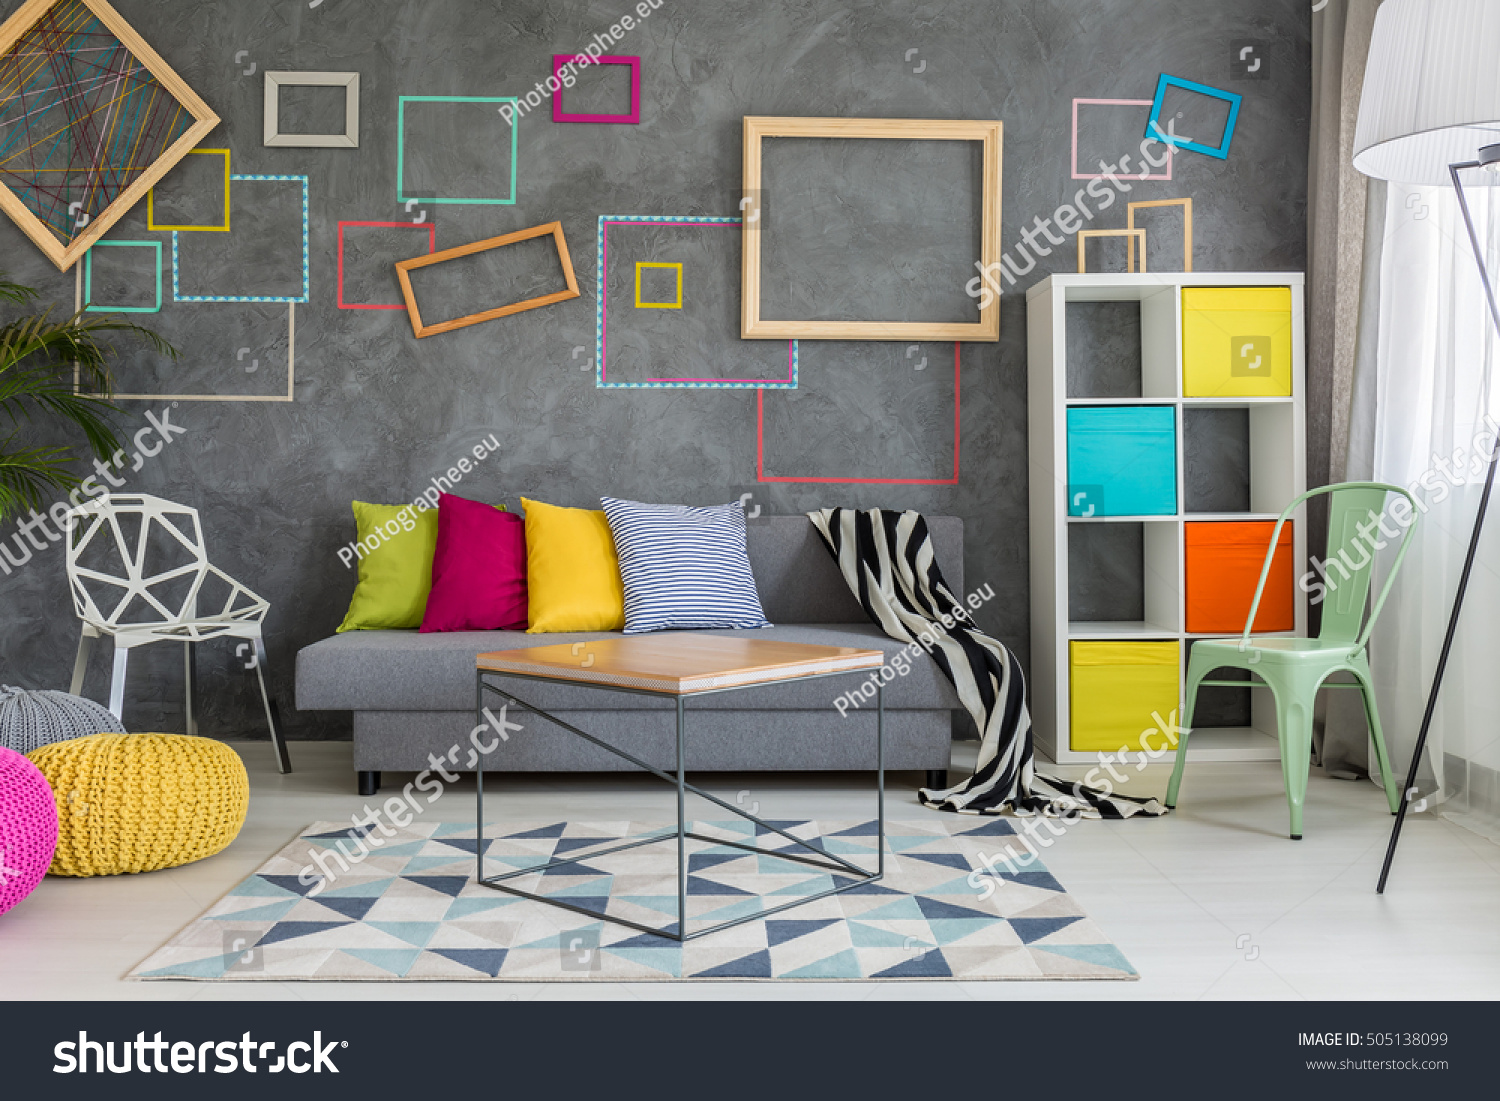 Spacious Apartment Grey Colorful Wall Decor Stockfoto (Lizenzfrei ...